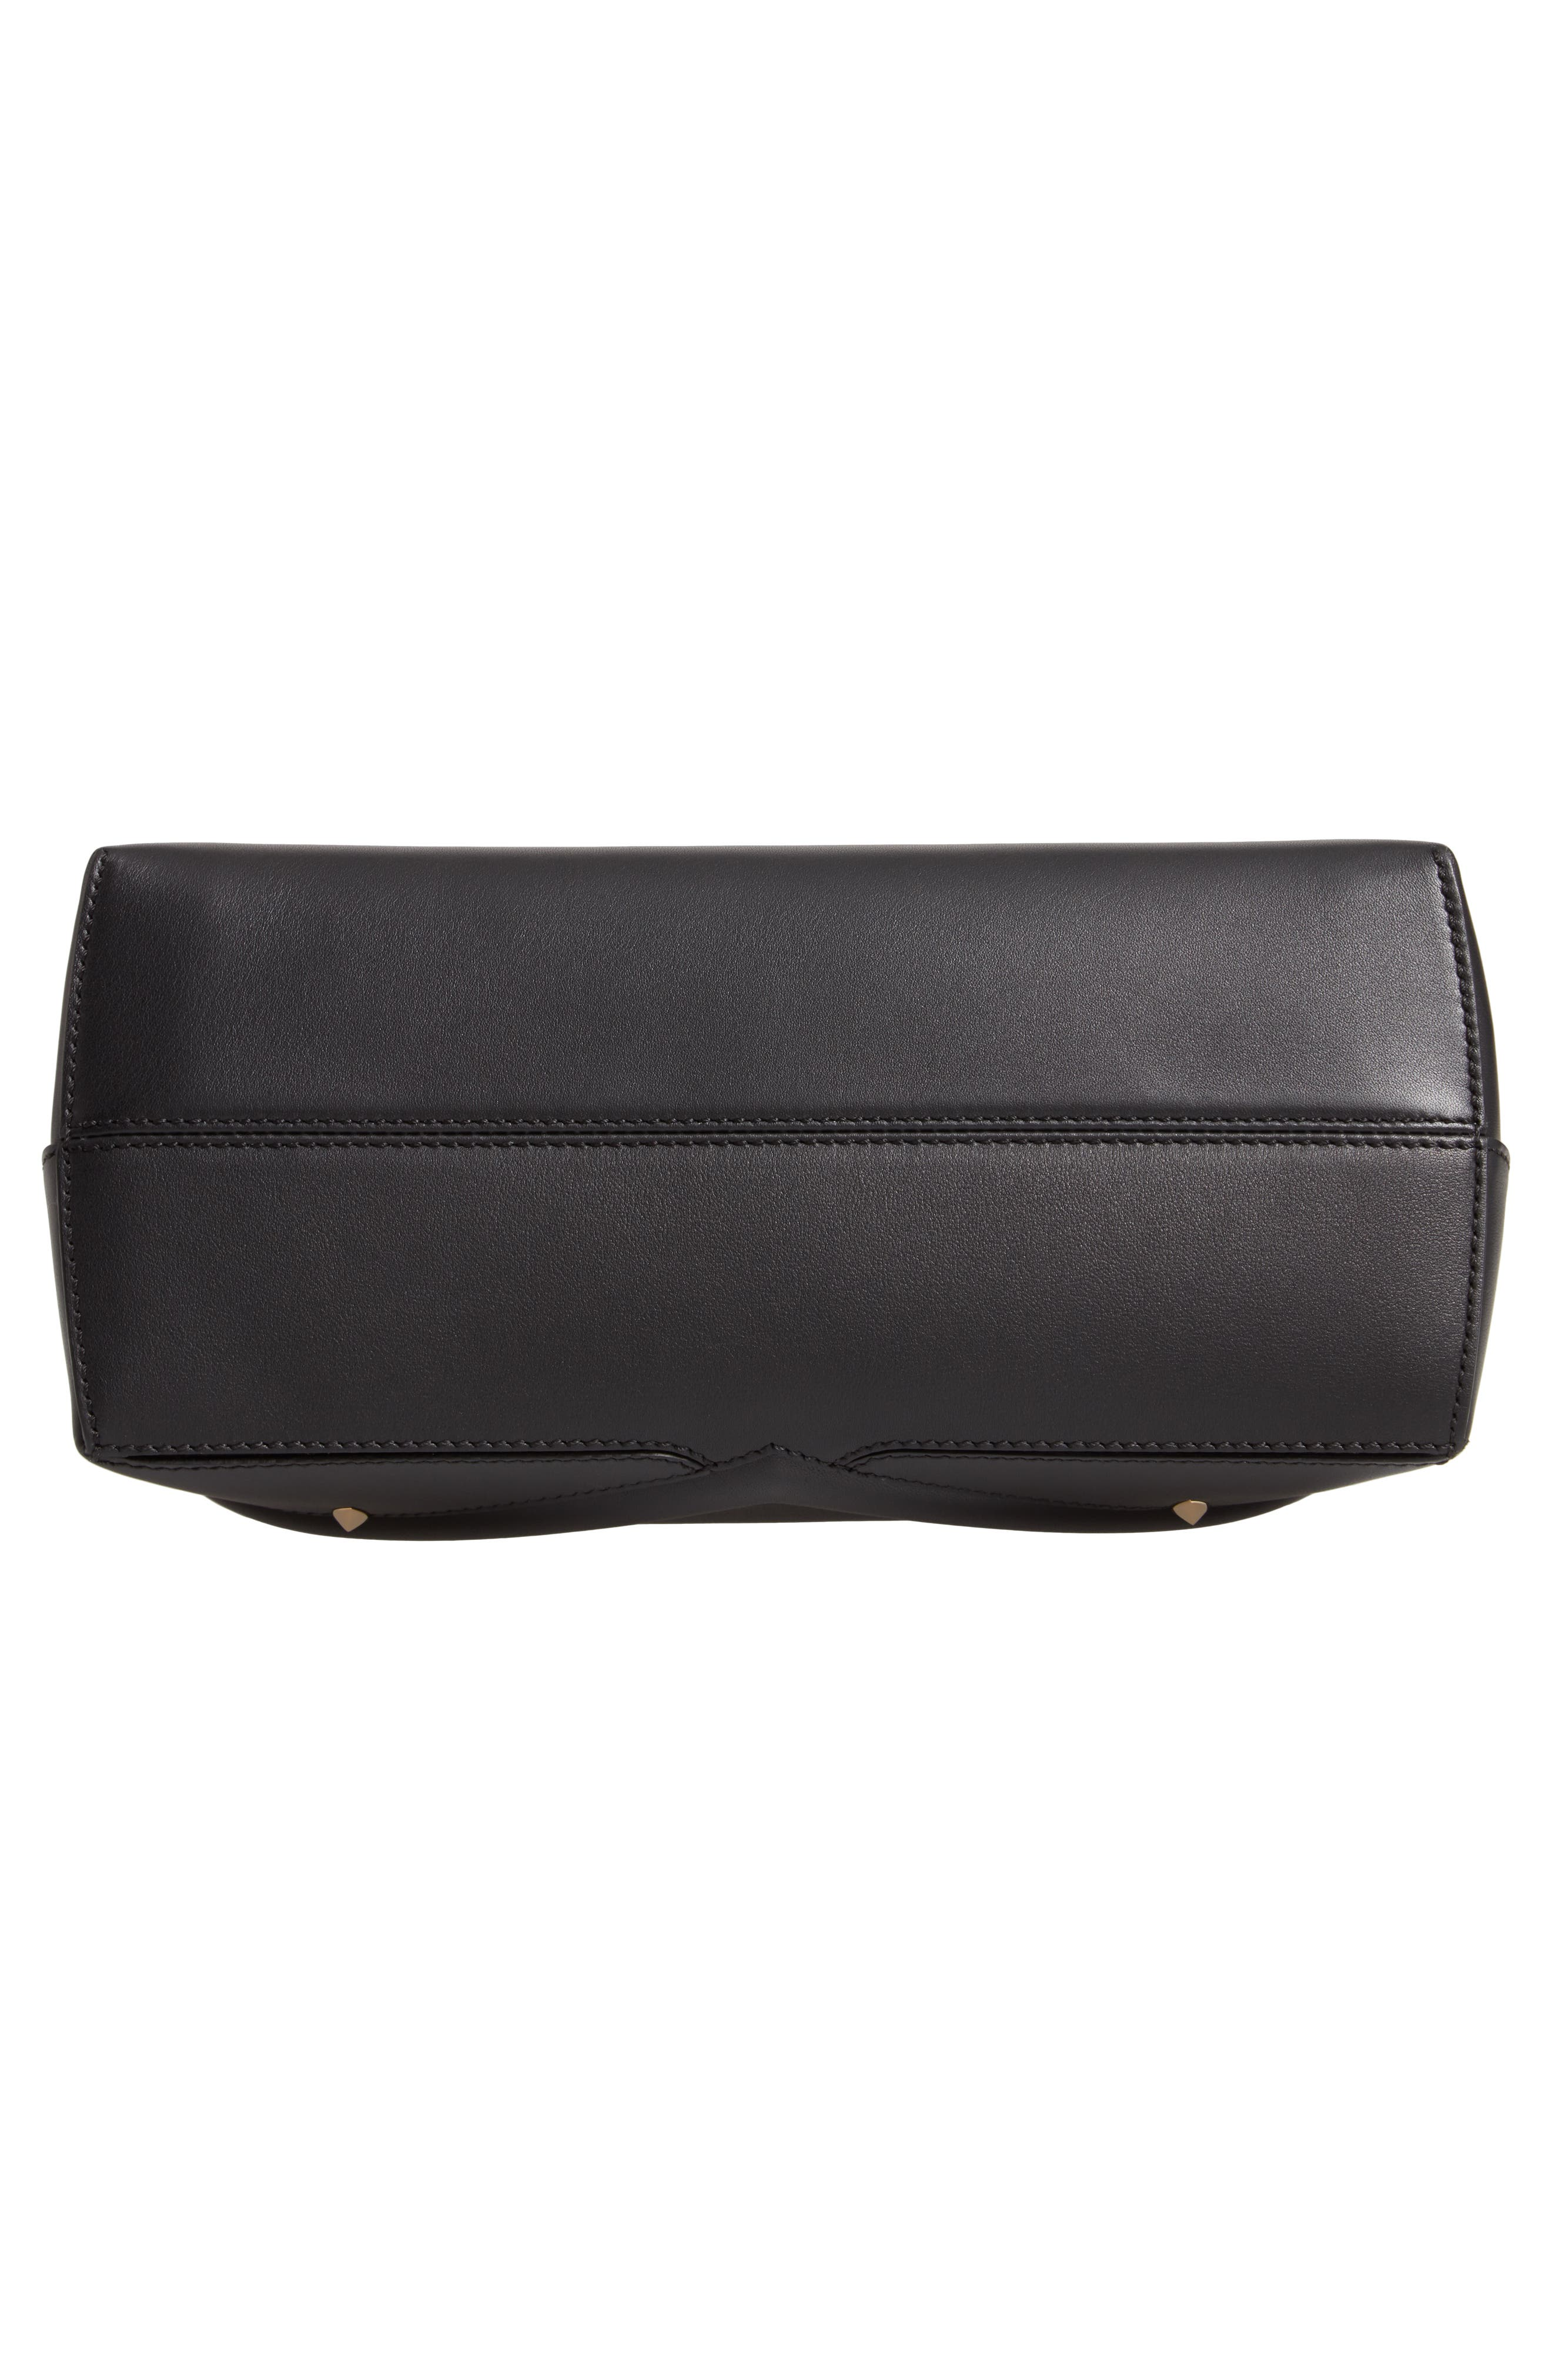 By the Way - Wonders Convertible Leather Shoulder Bag,                             Alternate thumbnail 6, color,                             NERO/ ORO SOFT